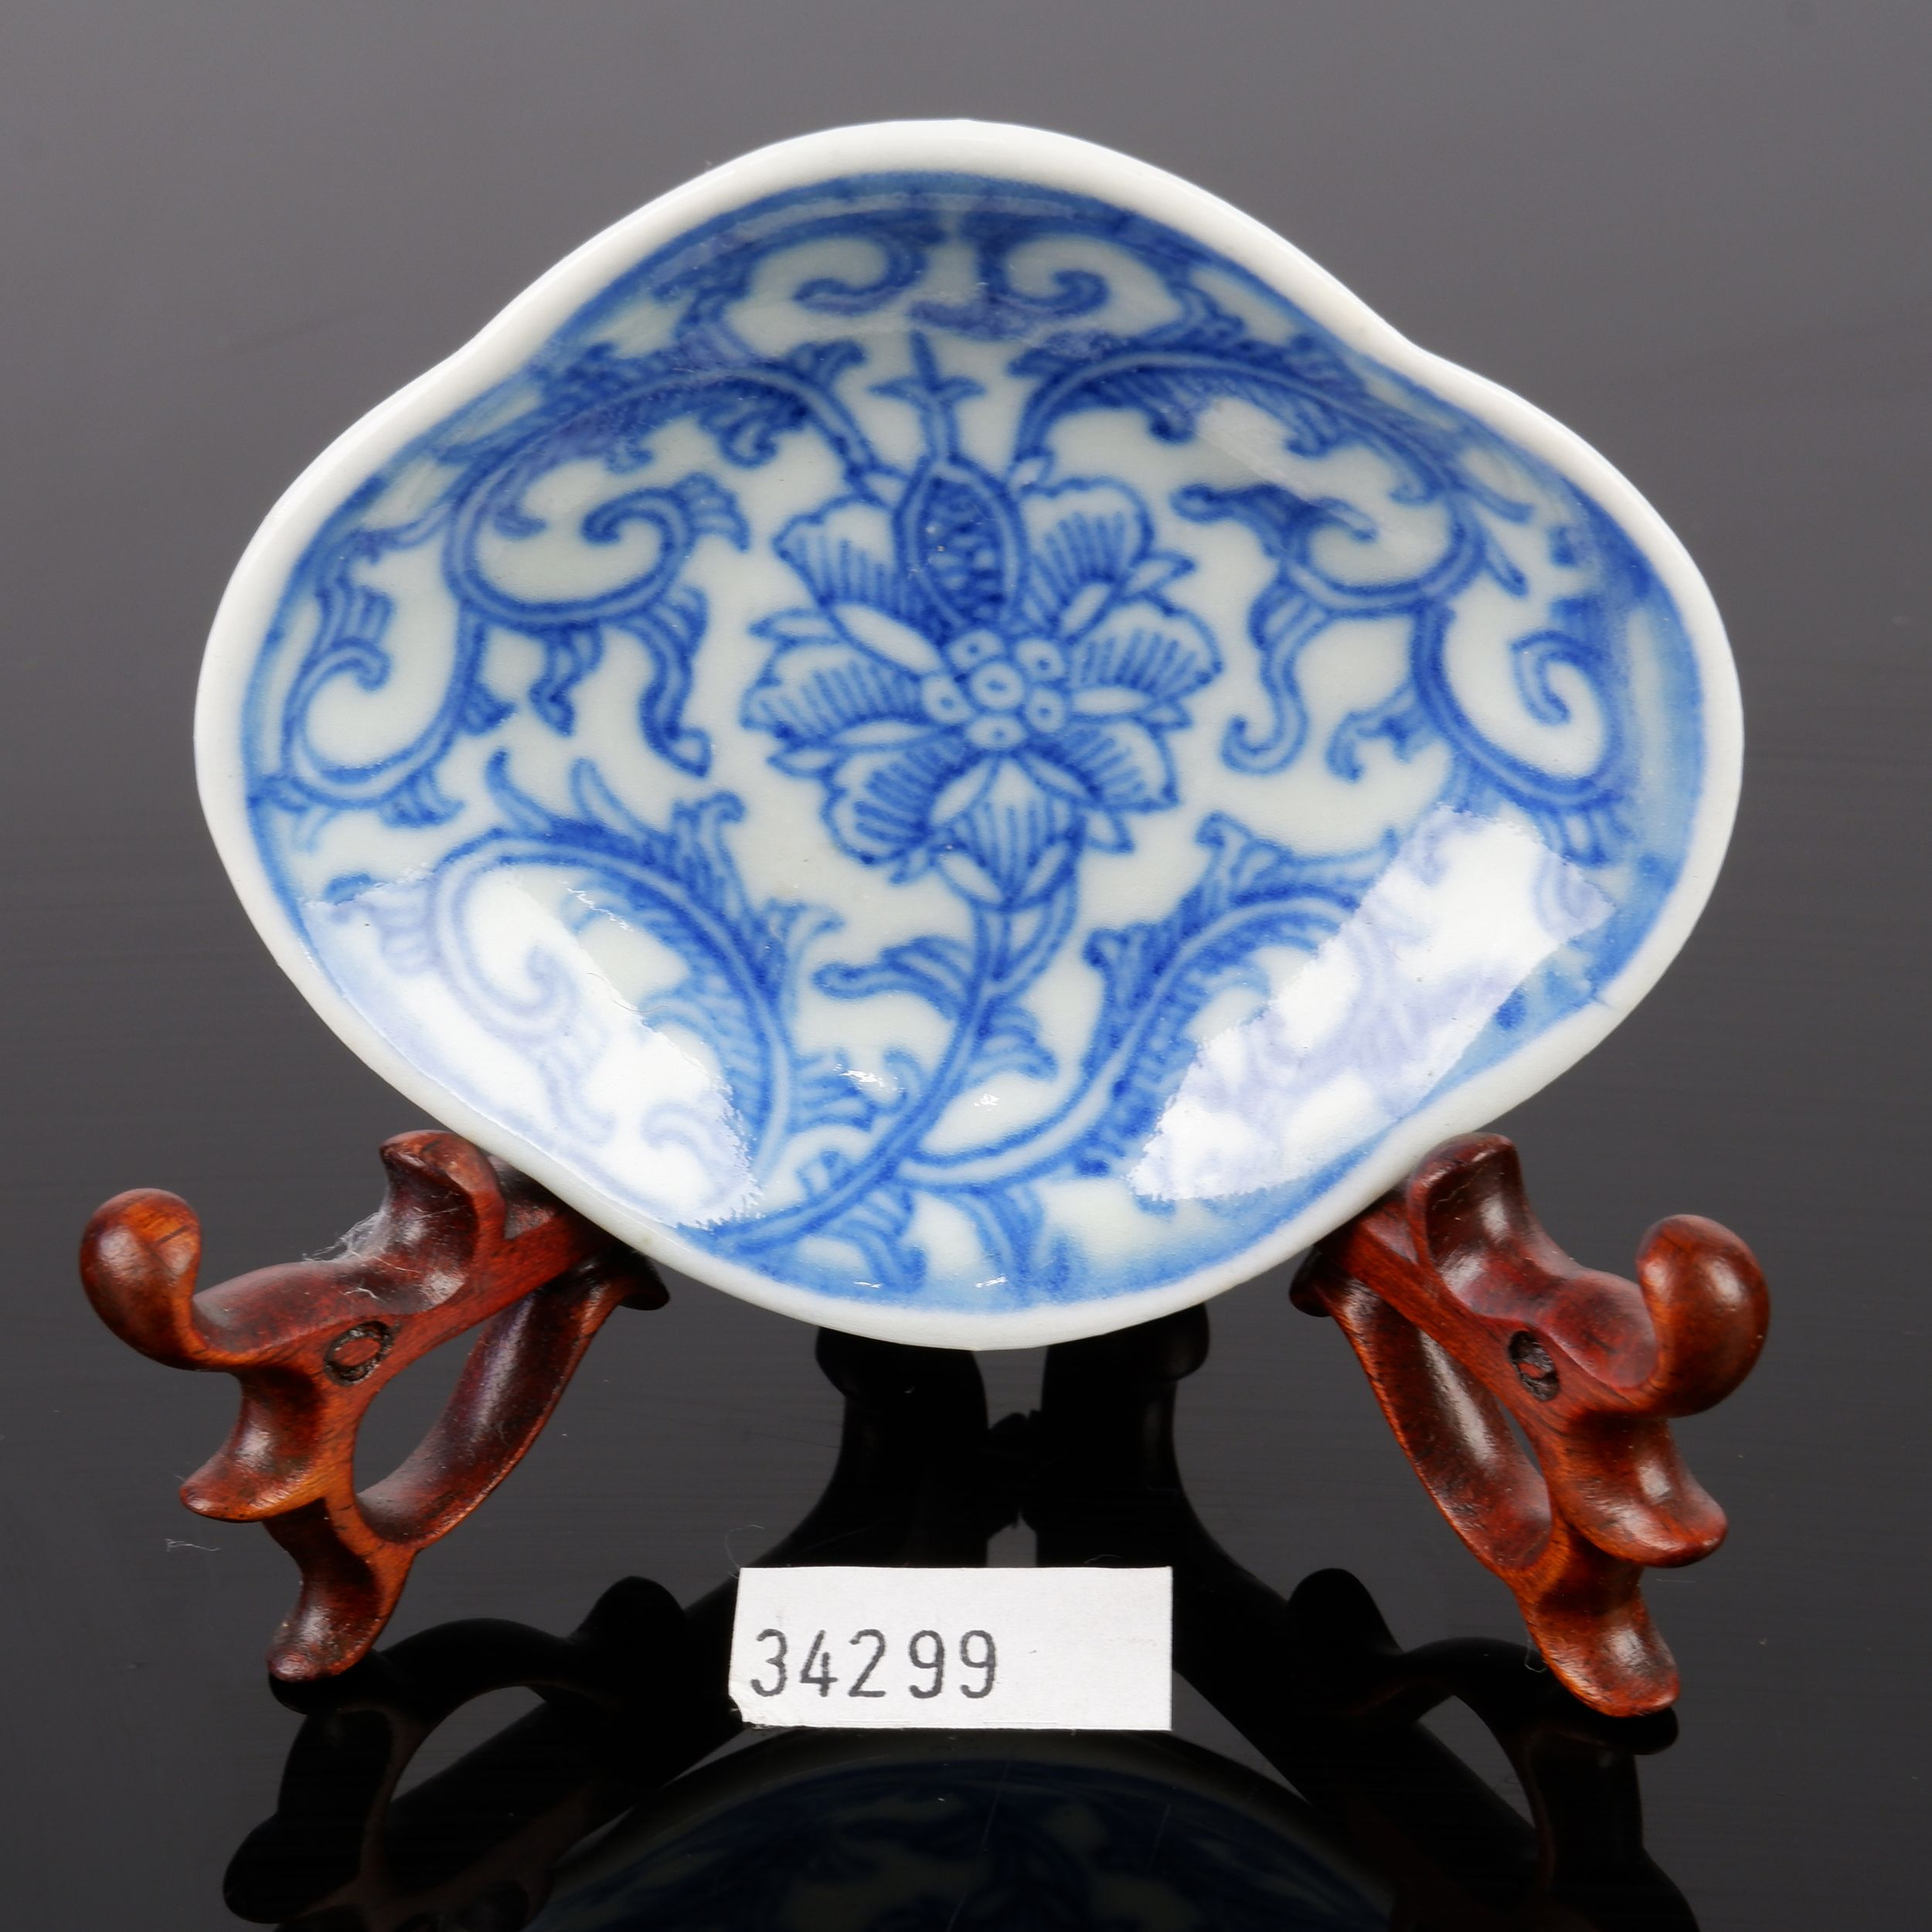 'Antique Chinese Porcelain Minature Lobed Dish, Seal Mark to Base'